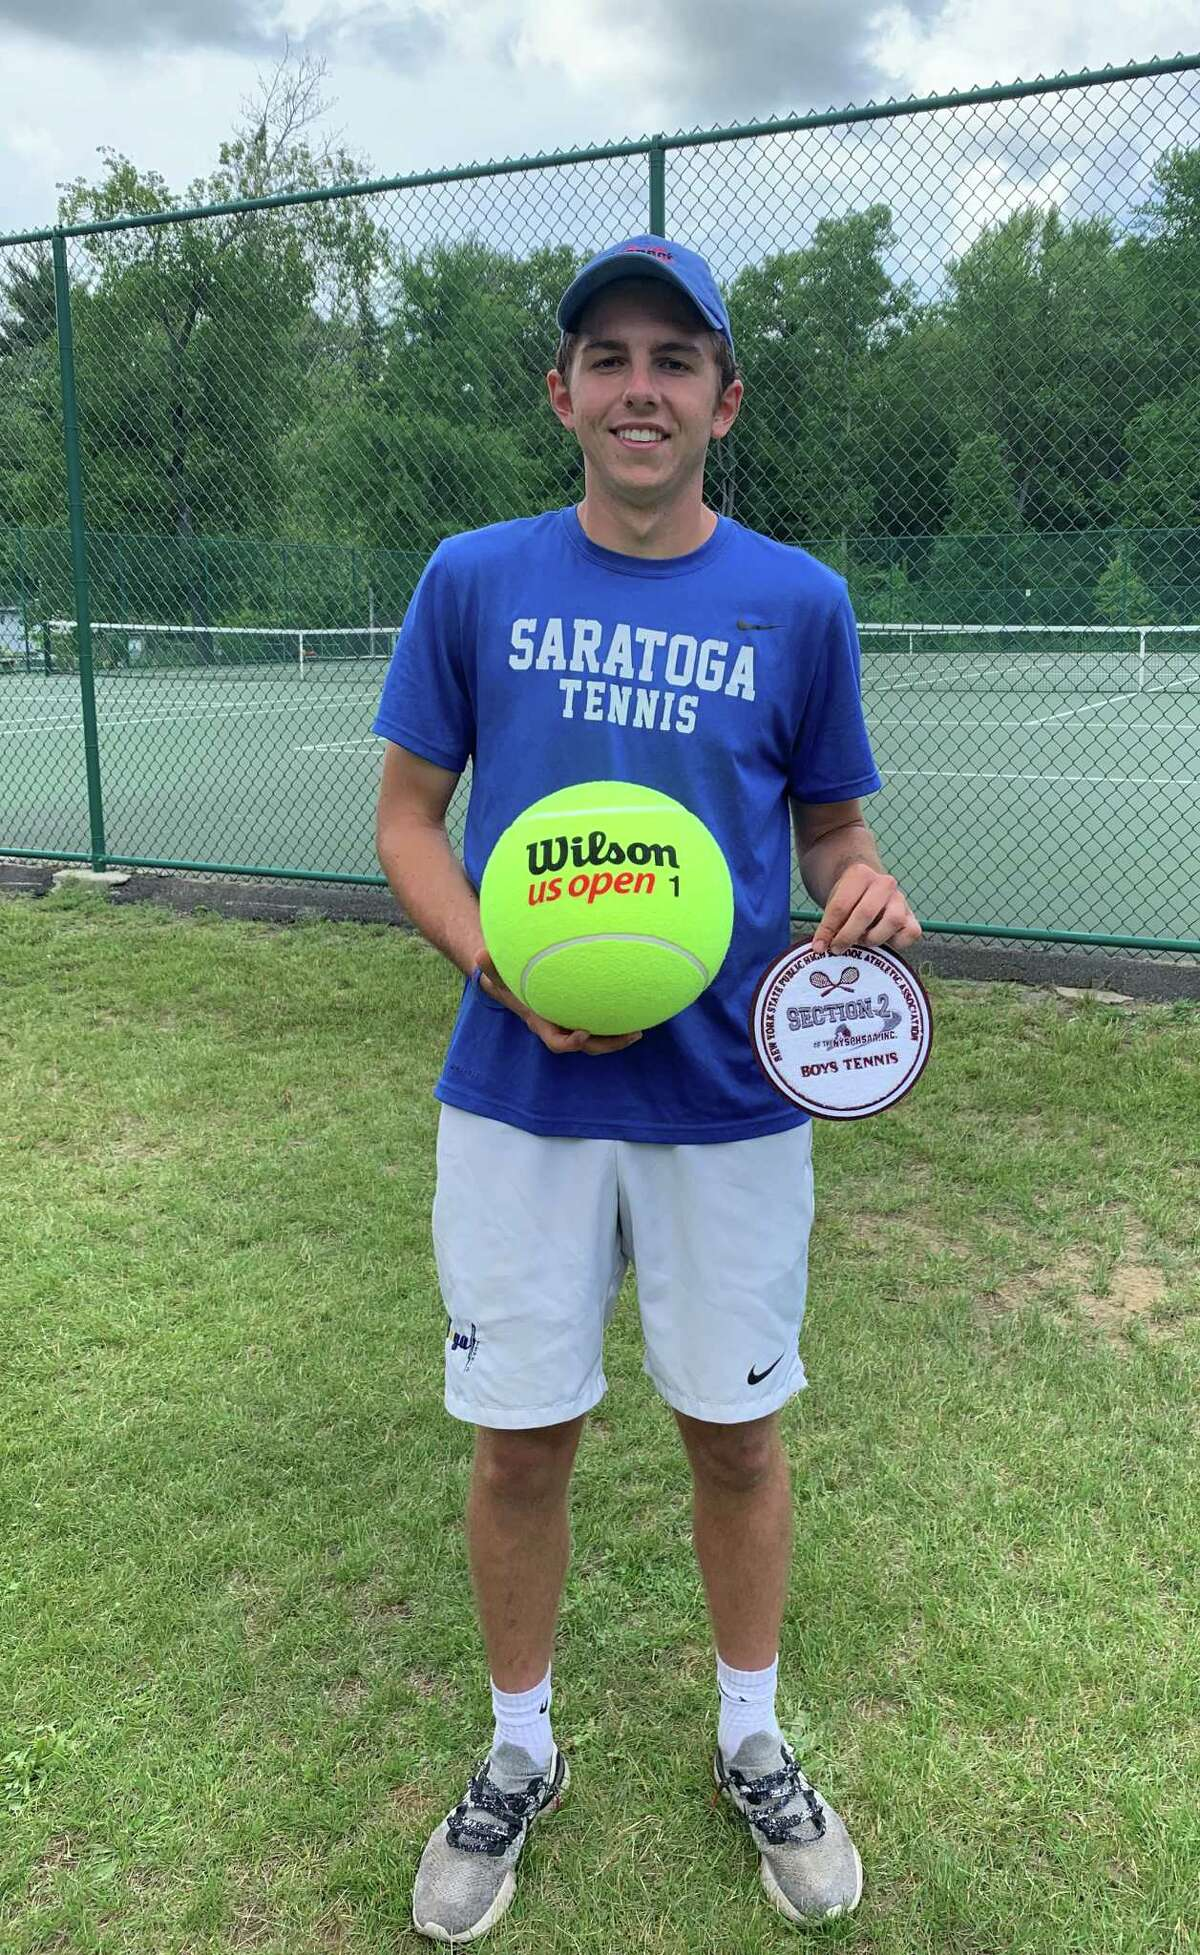 Boys' tennis Athlete of the Year Nick Grosso of Saratoga Springs High School.